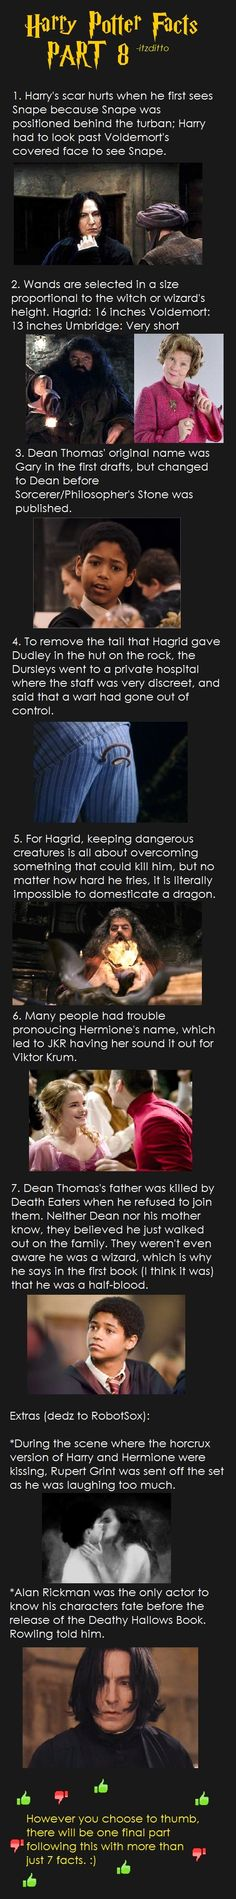 Harry Potter did you know